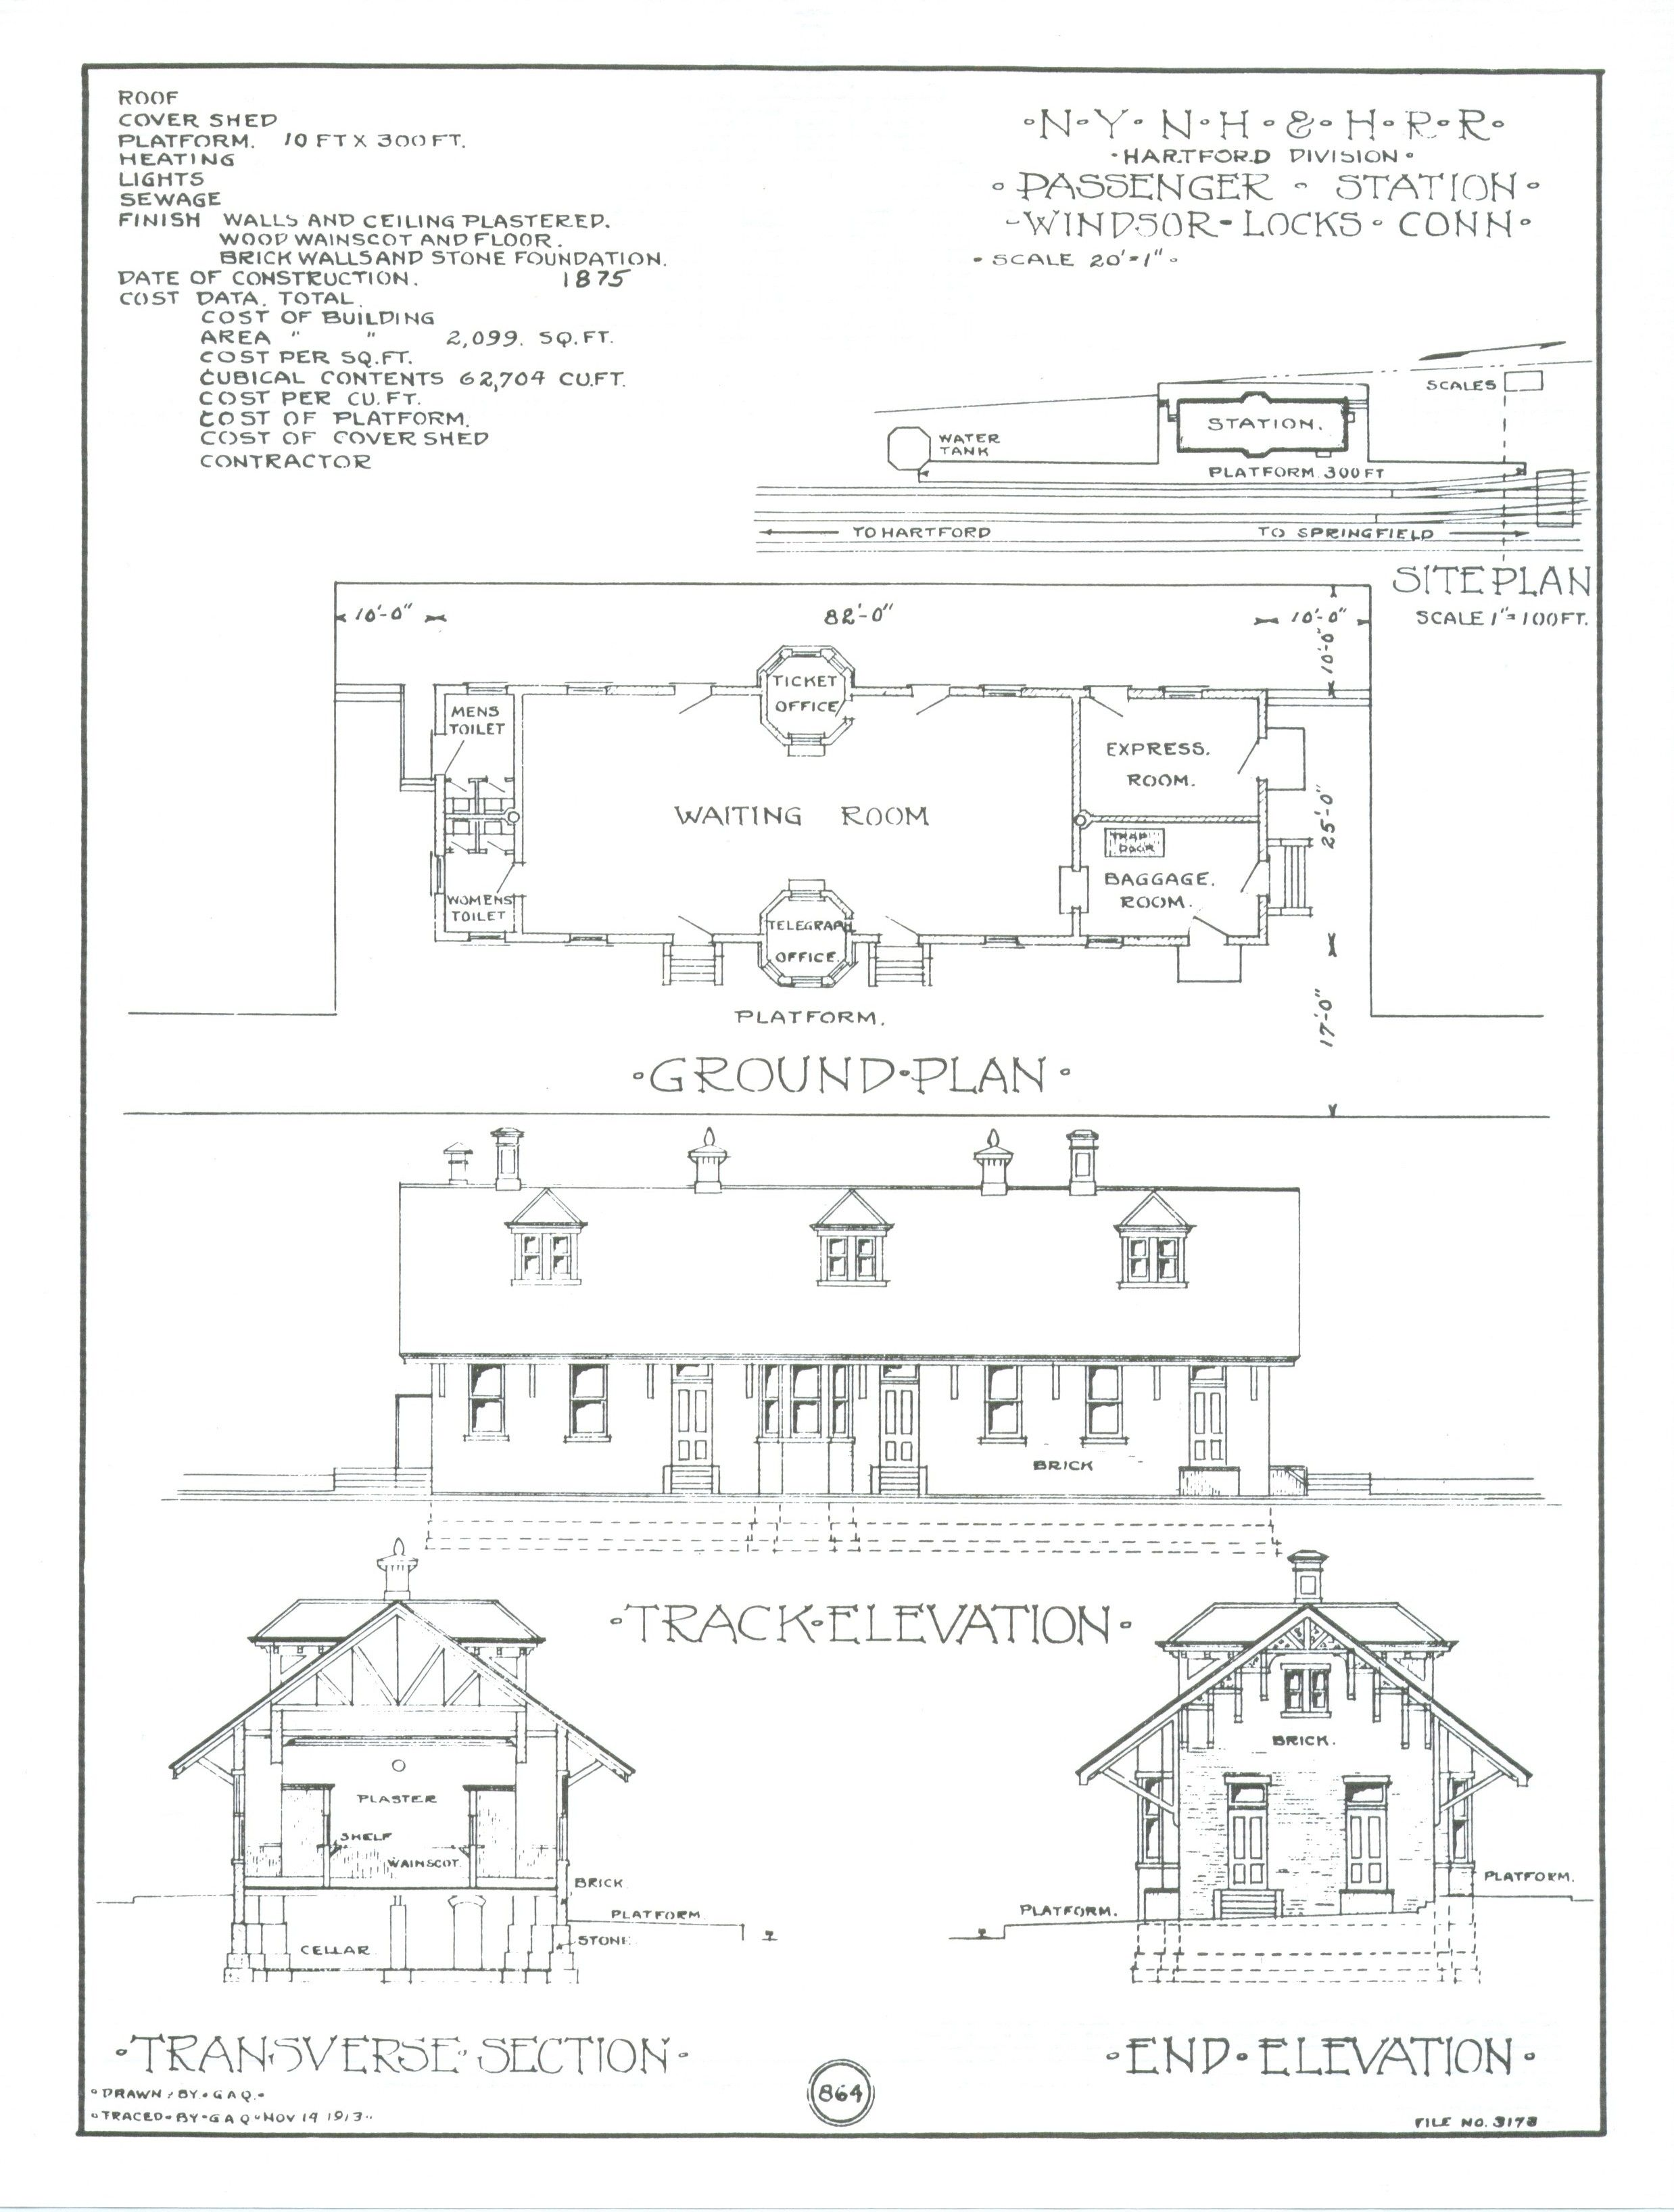 Train depot blueprints windsor locks preservation for Blueprint scale